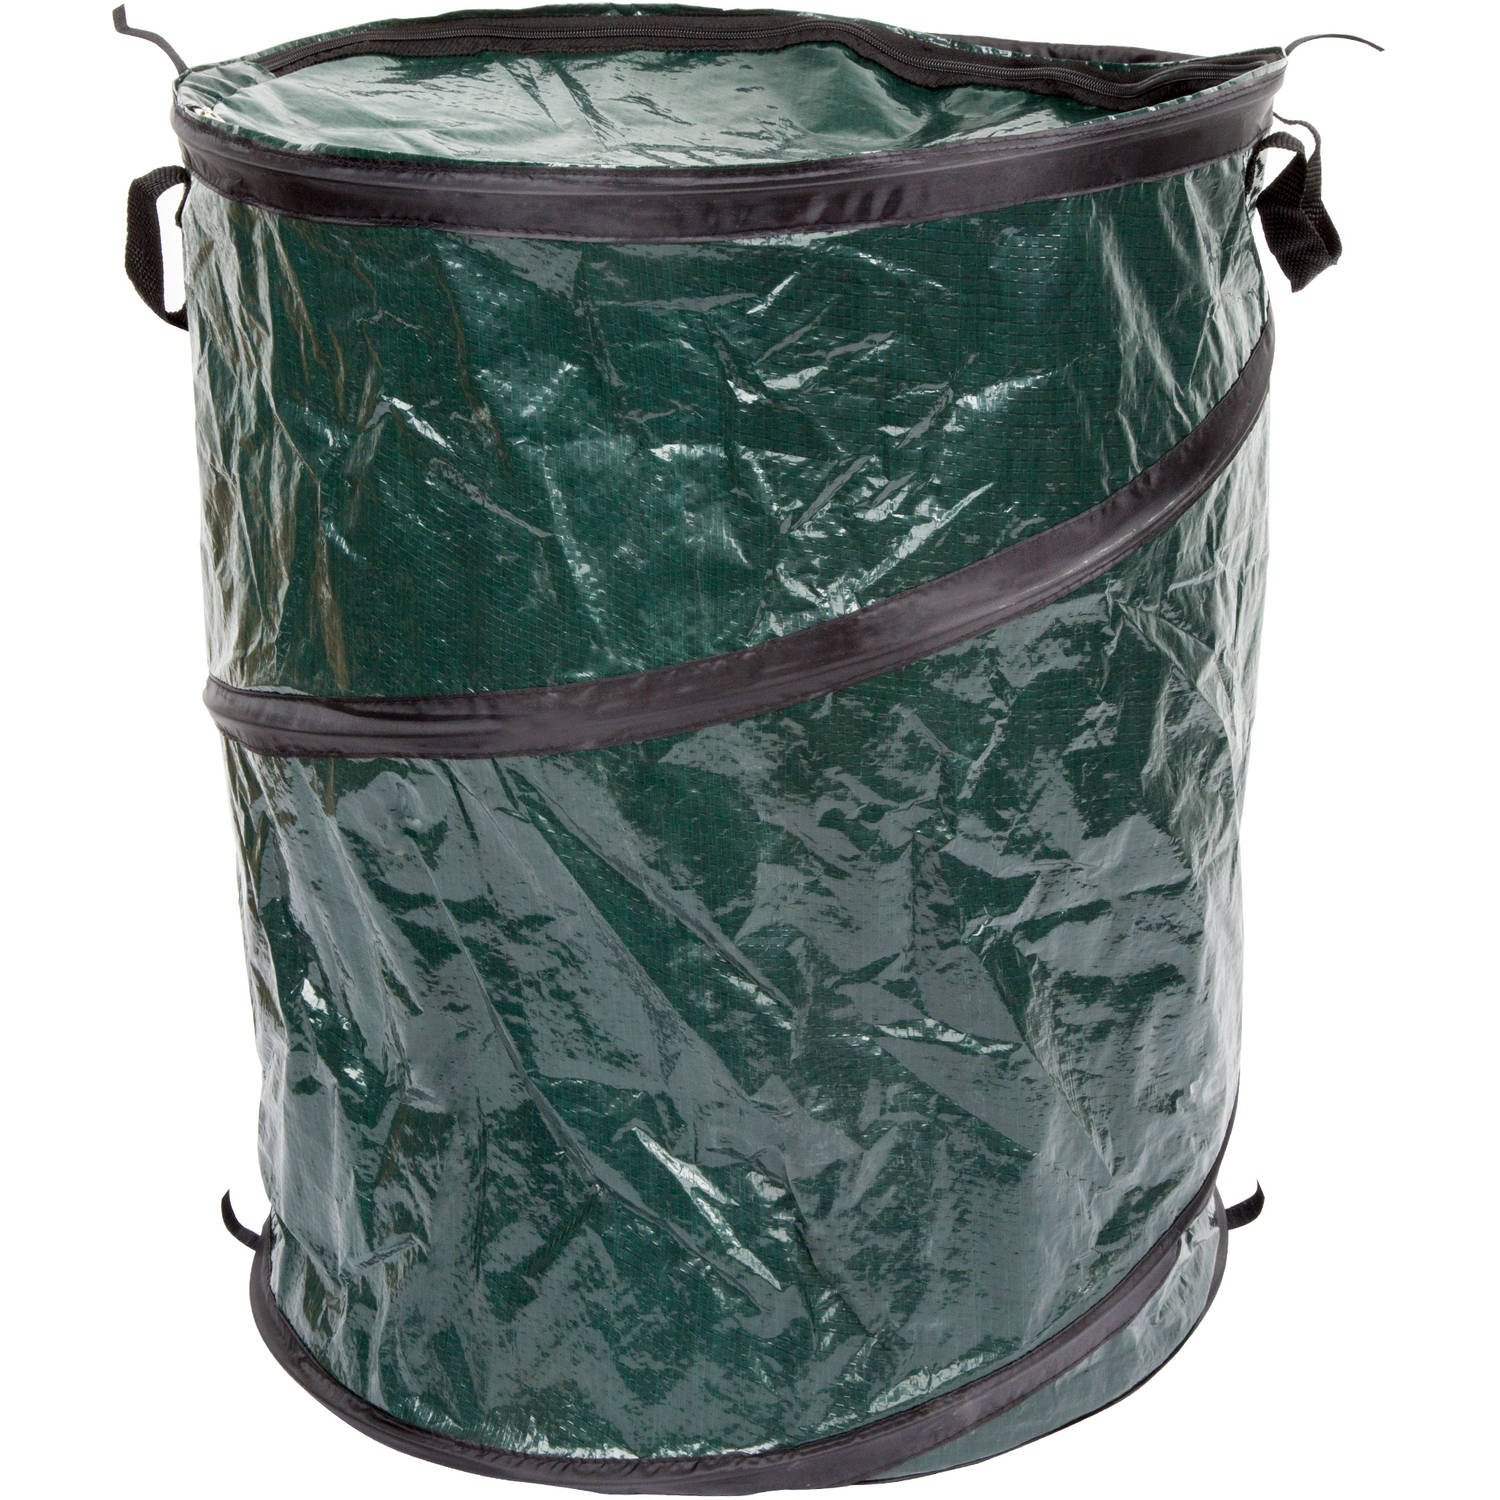 Wakeman Outdoors Pop-Up 33-Gal Camping Trash Bin